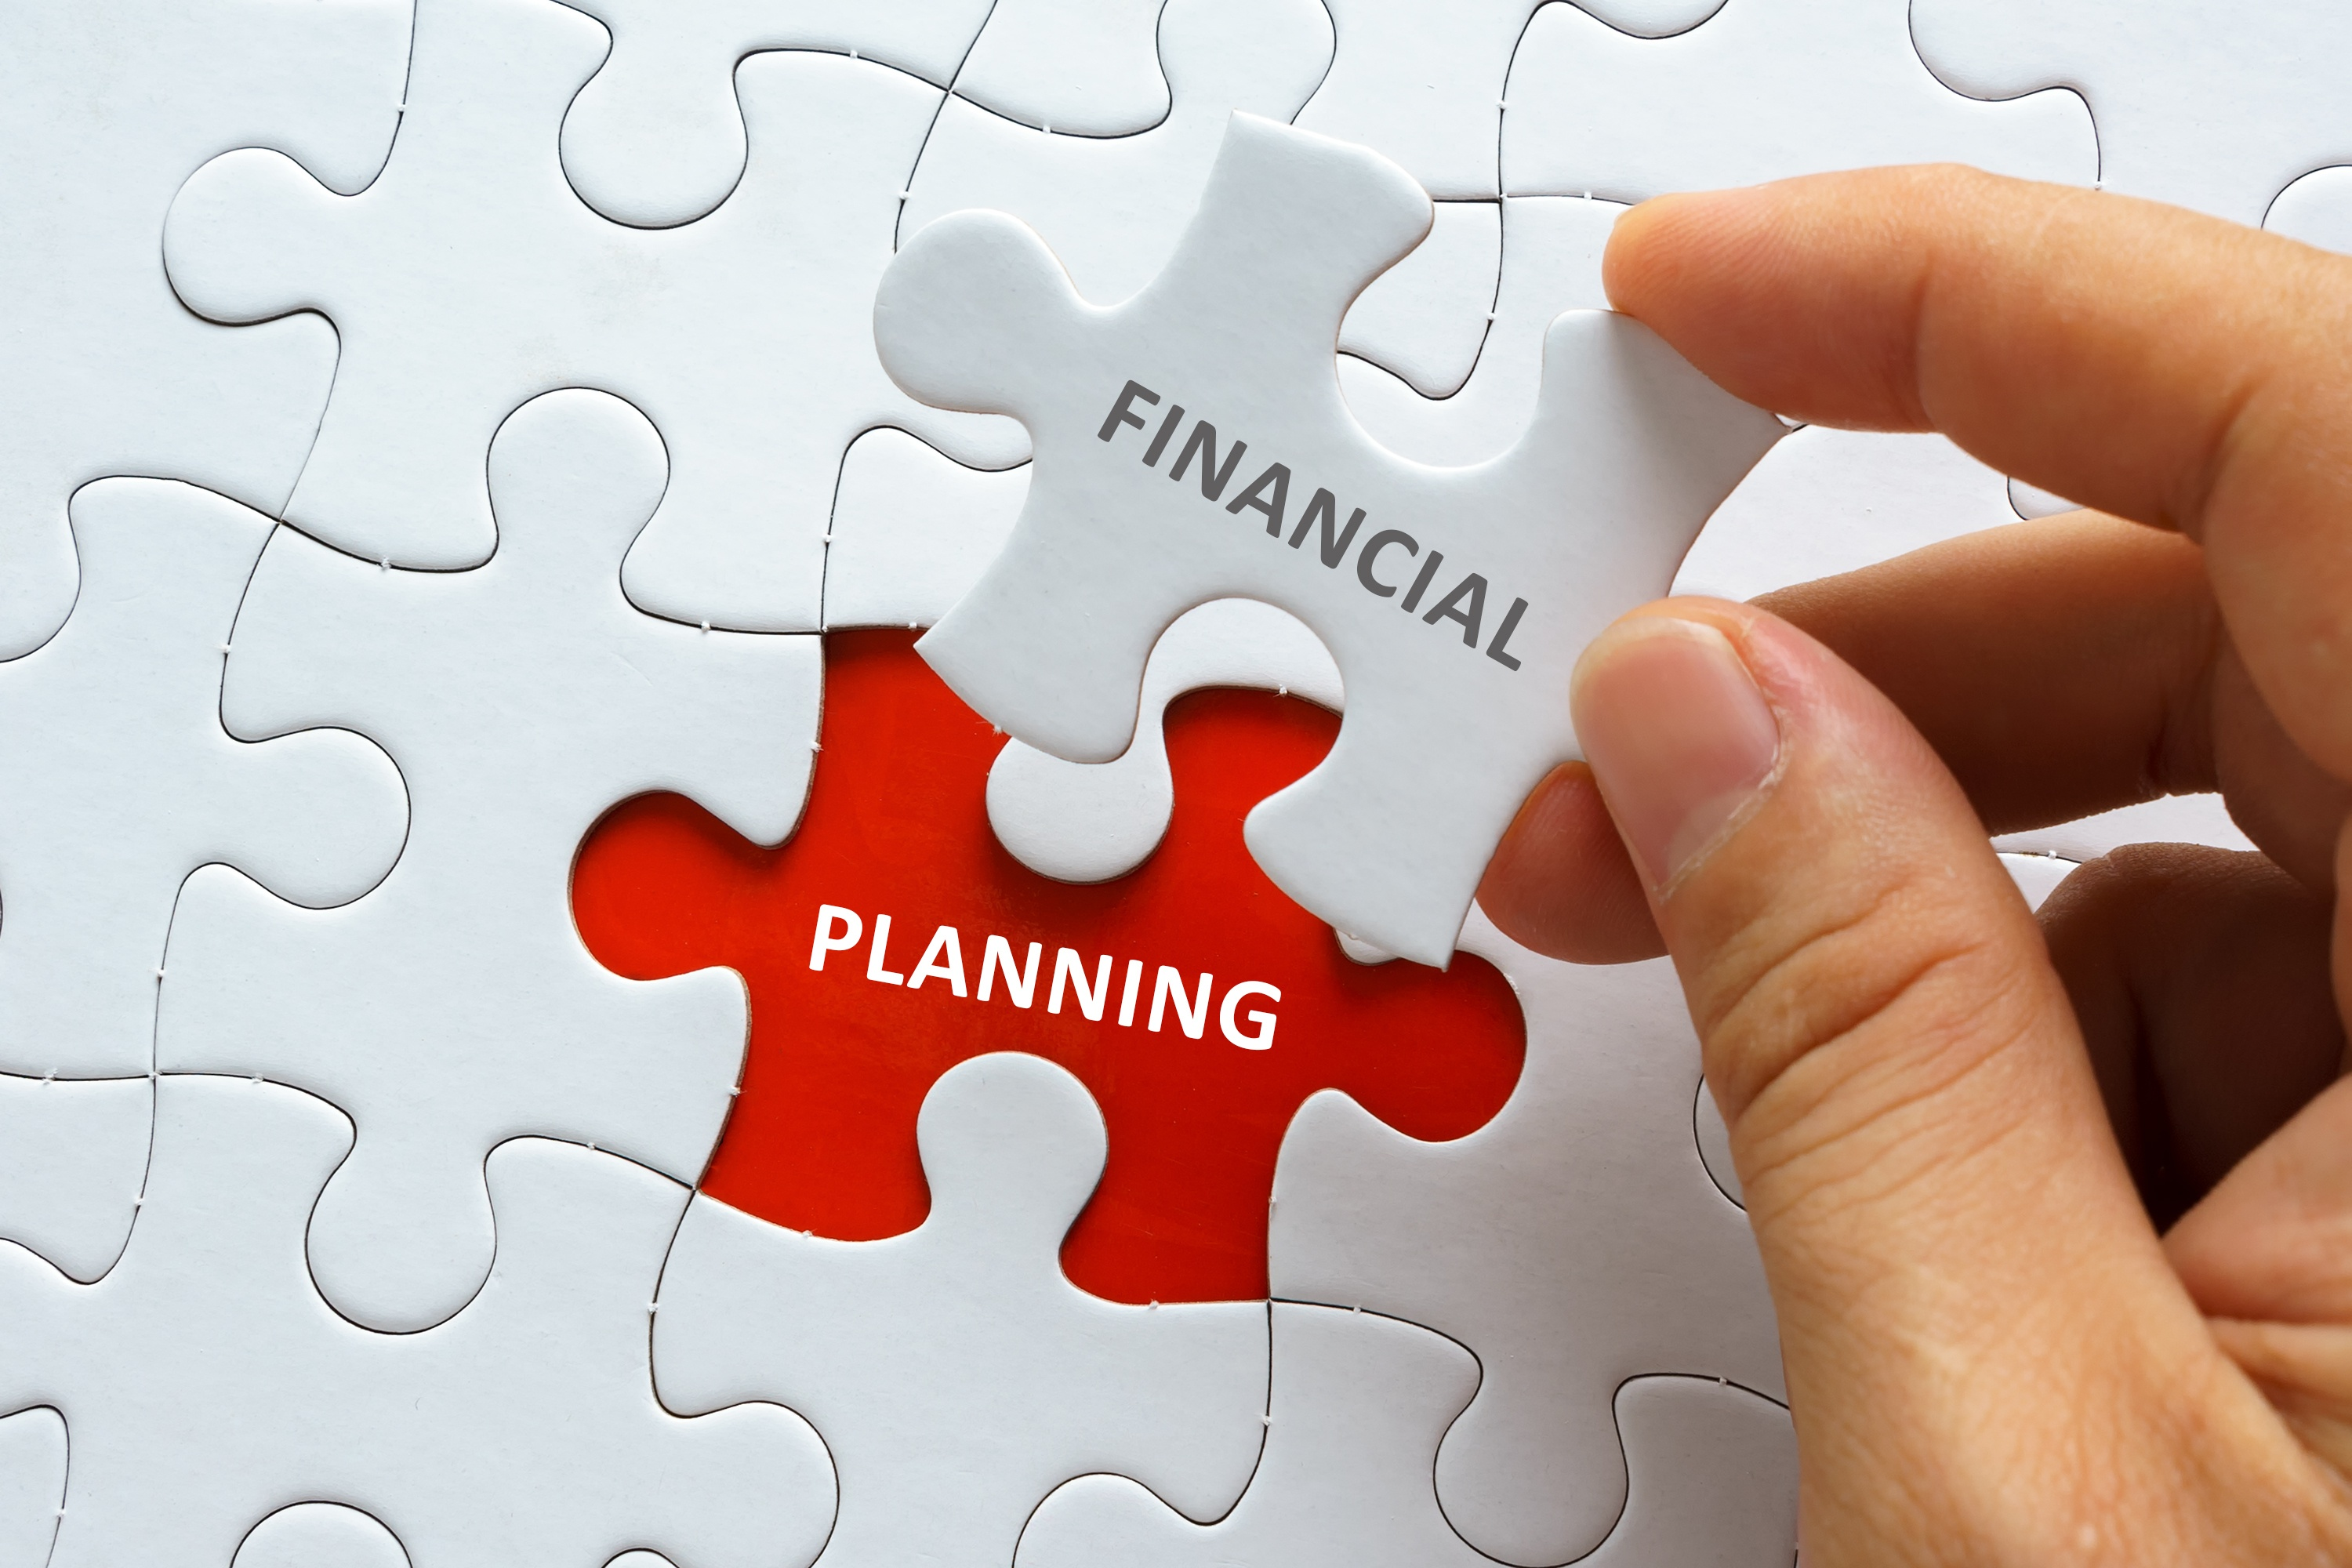 shutterstock_434504773_financial planning